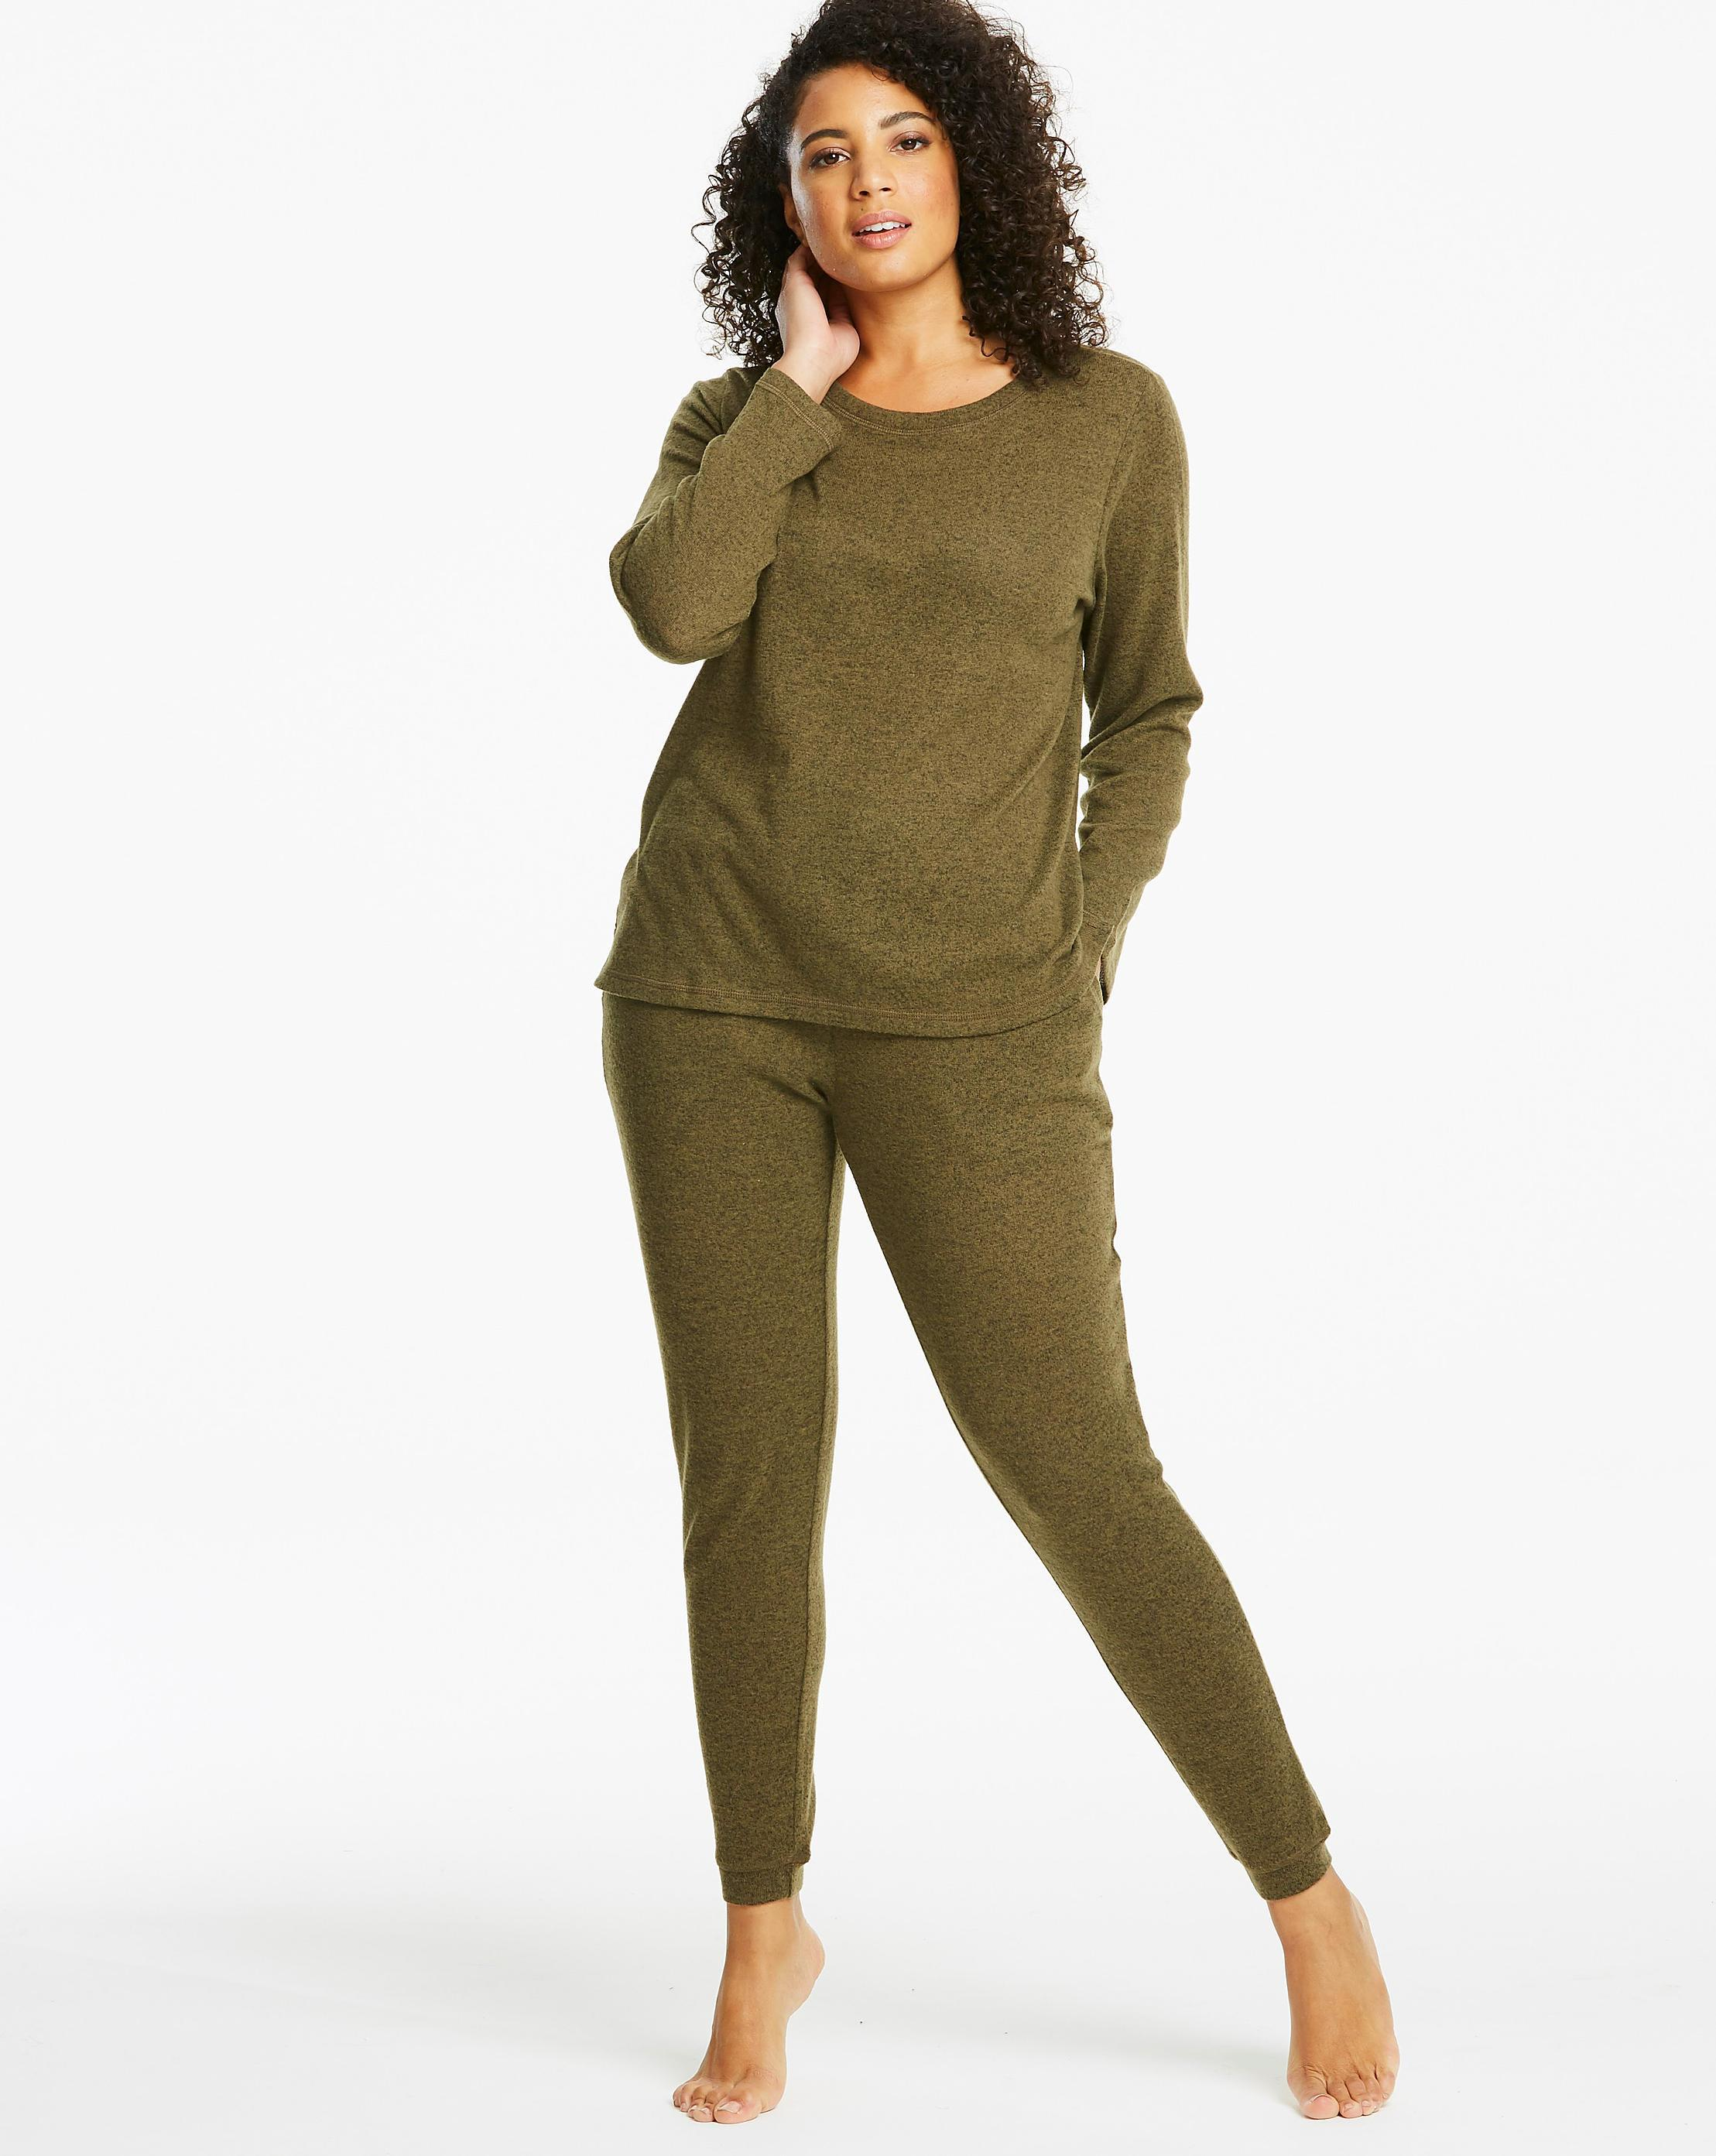 375660e05a88 Lyst - Simply Be Pretty Secrets Knitted Twosie in Green